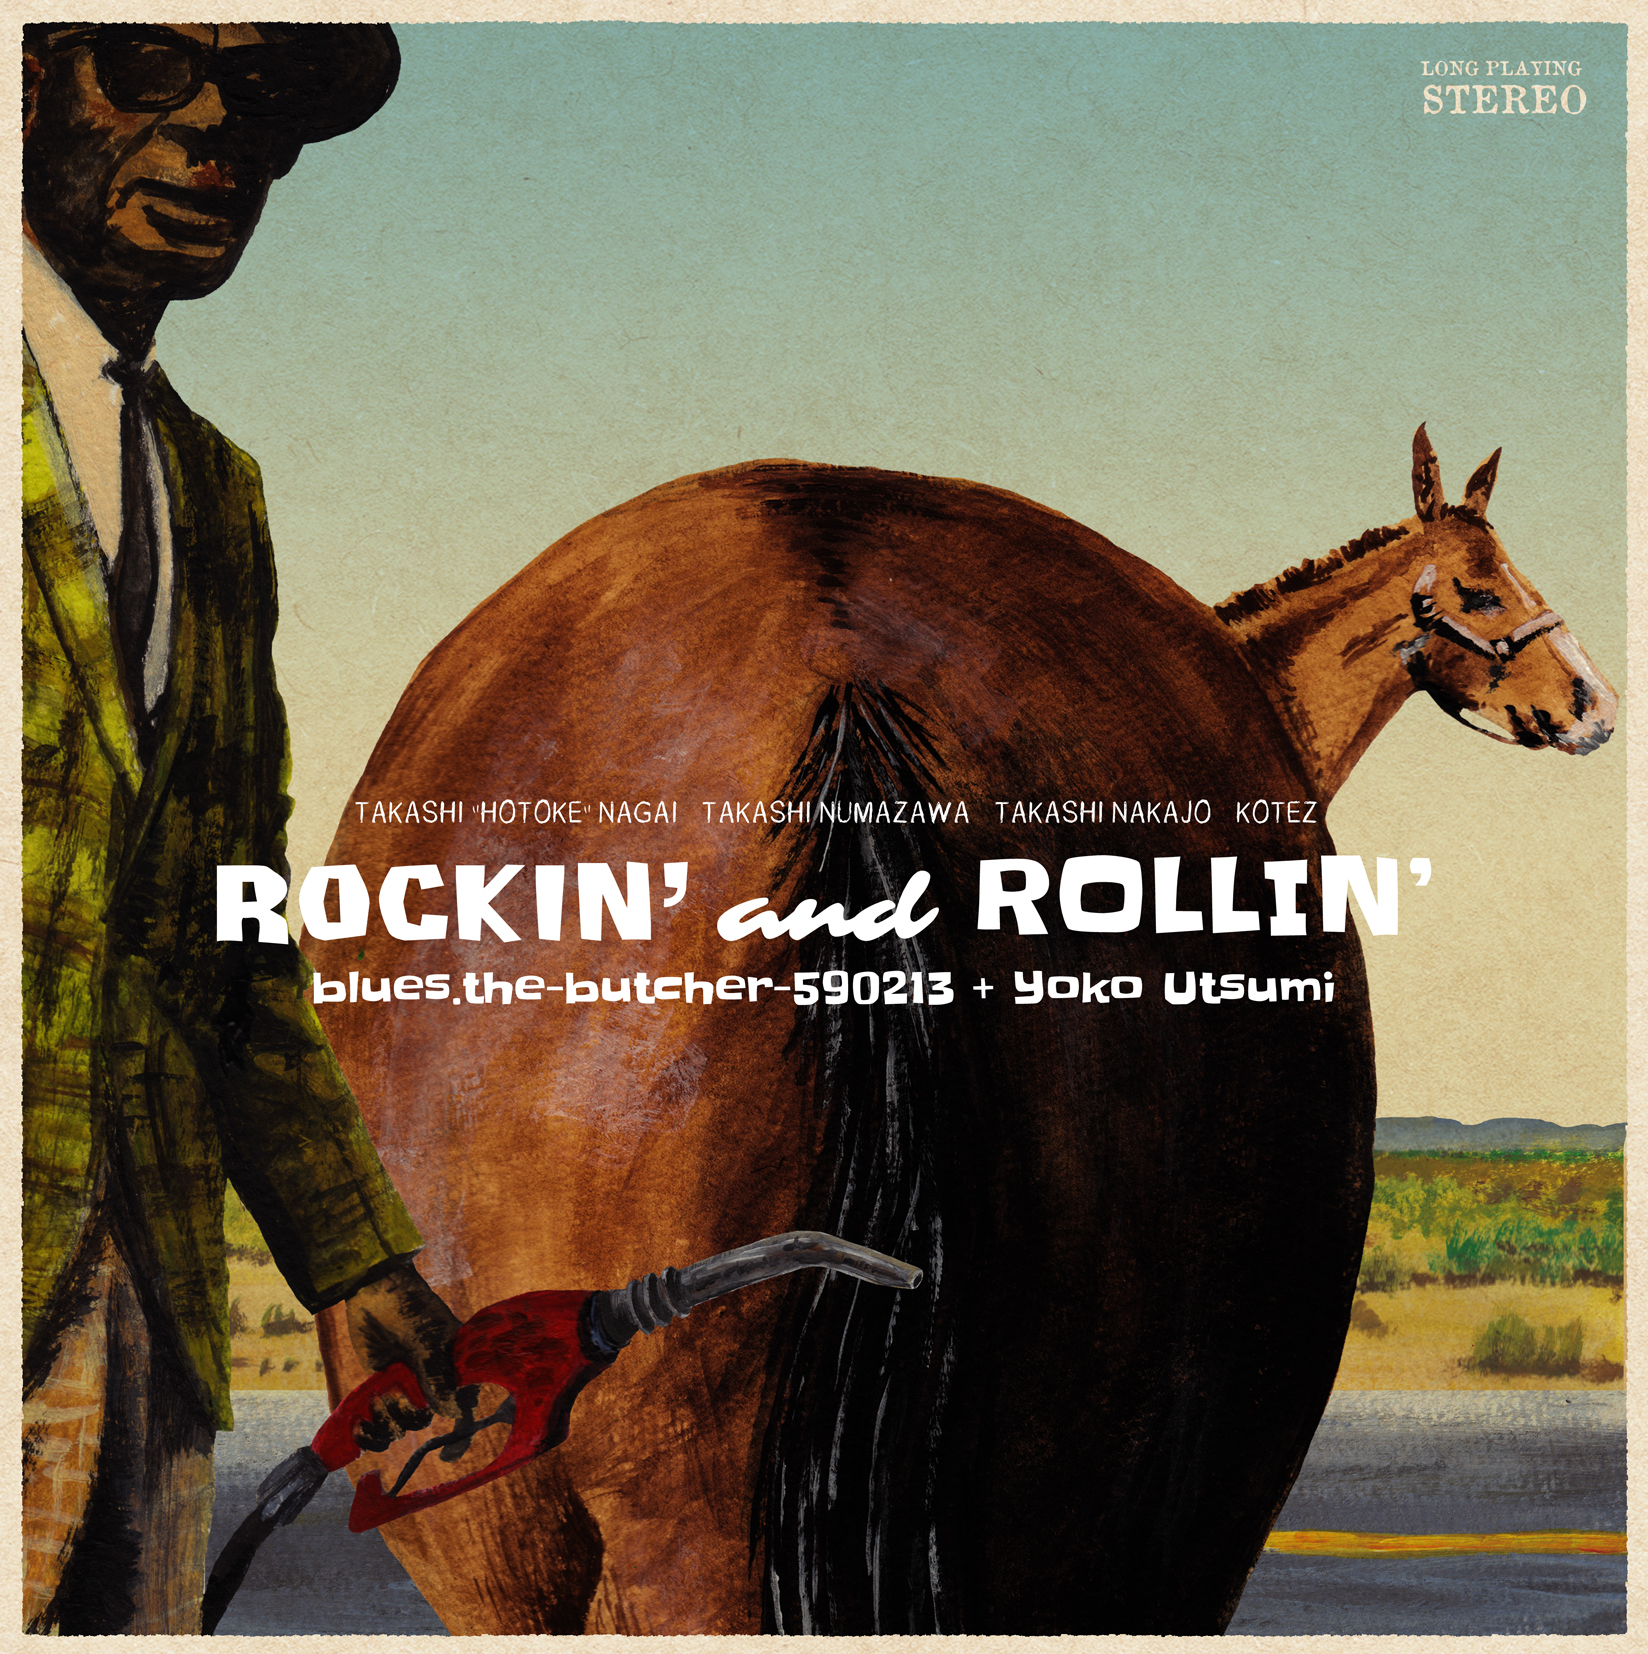 blues.the-butcher-590213 + Yoko Utsumi「Rockin' And Rollin'」